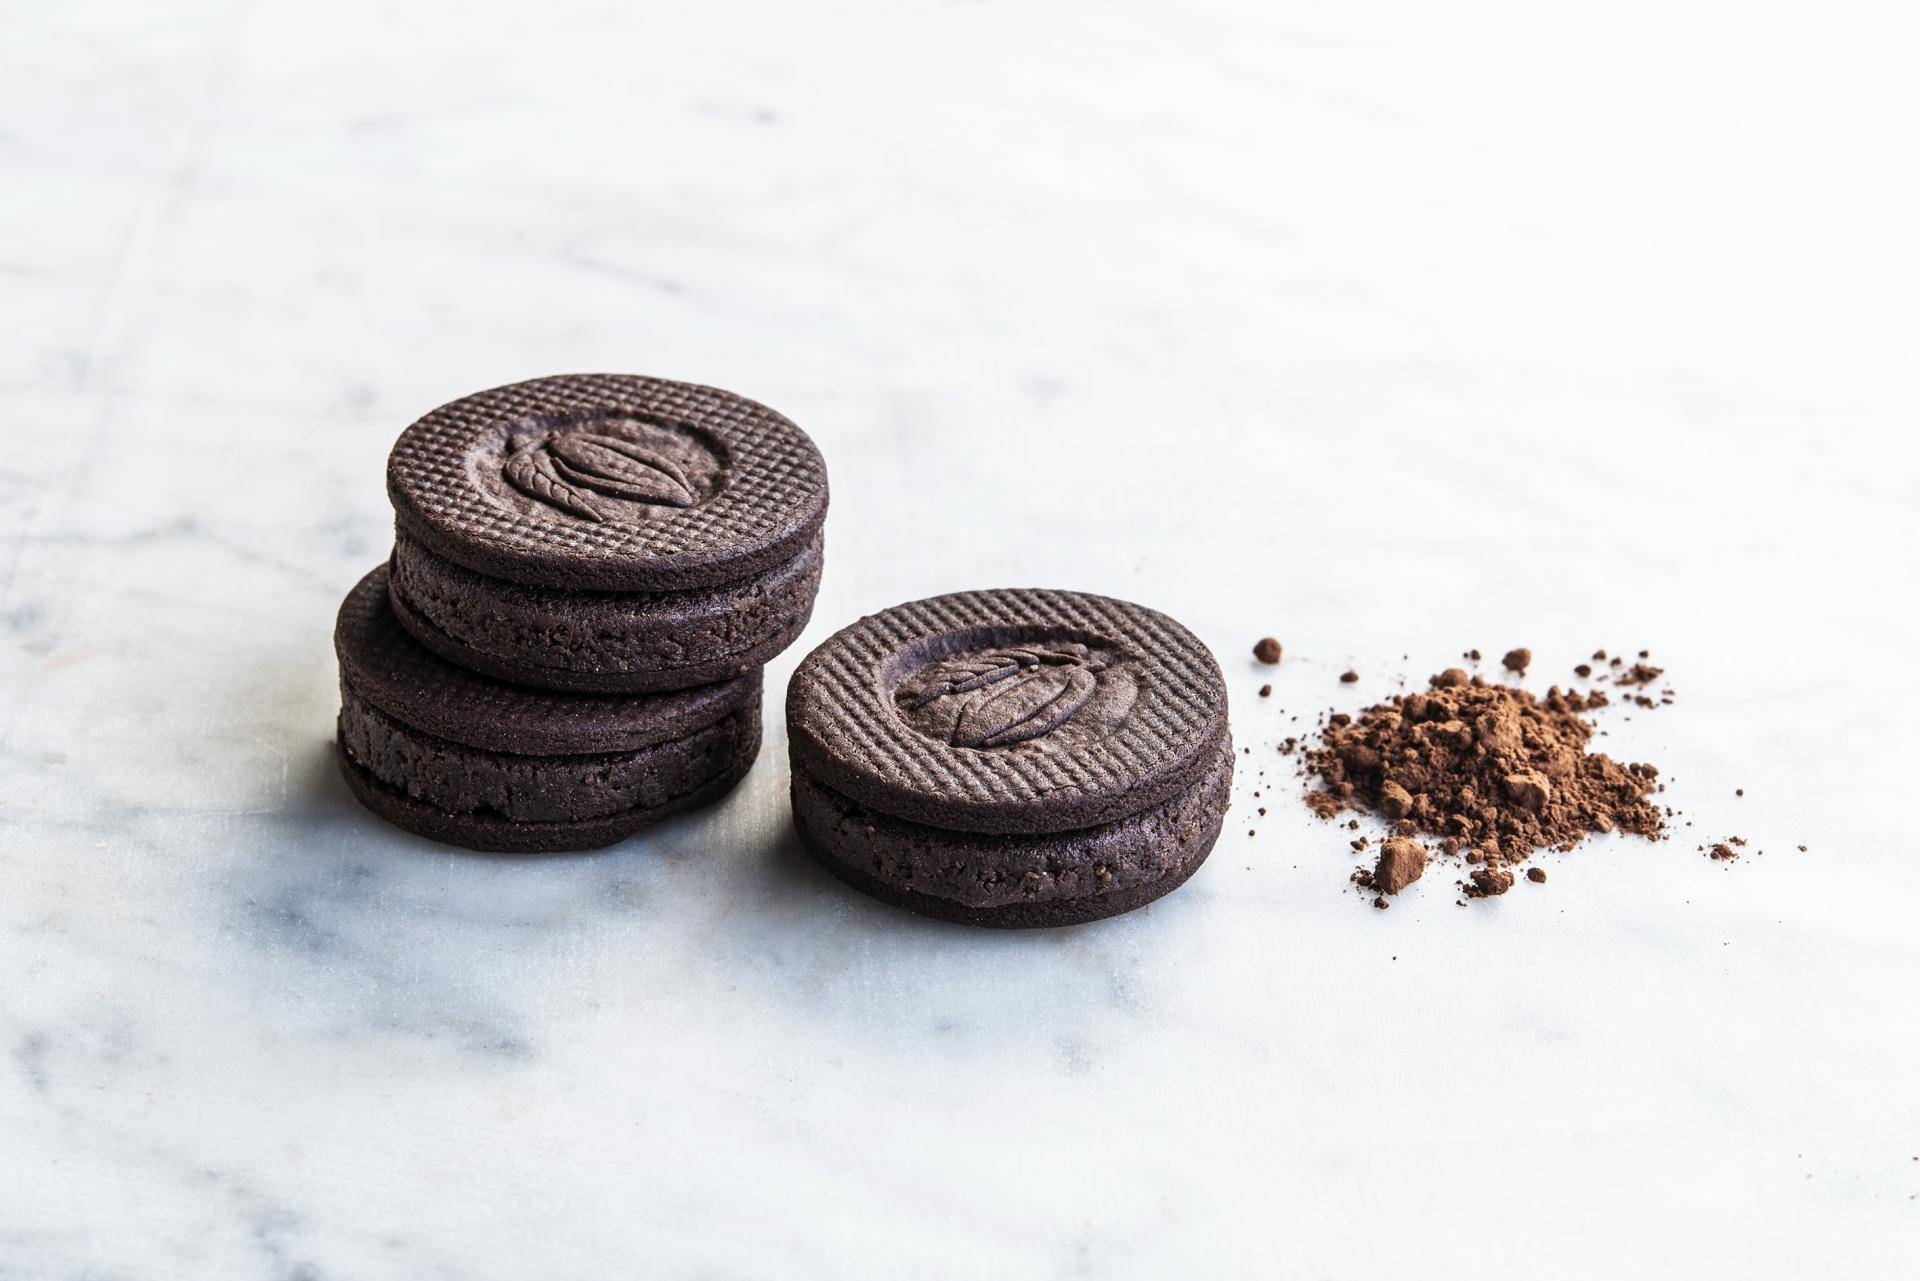 Cookies made with natural dark cocoa powder